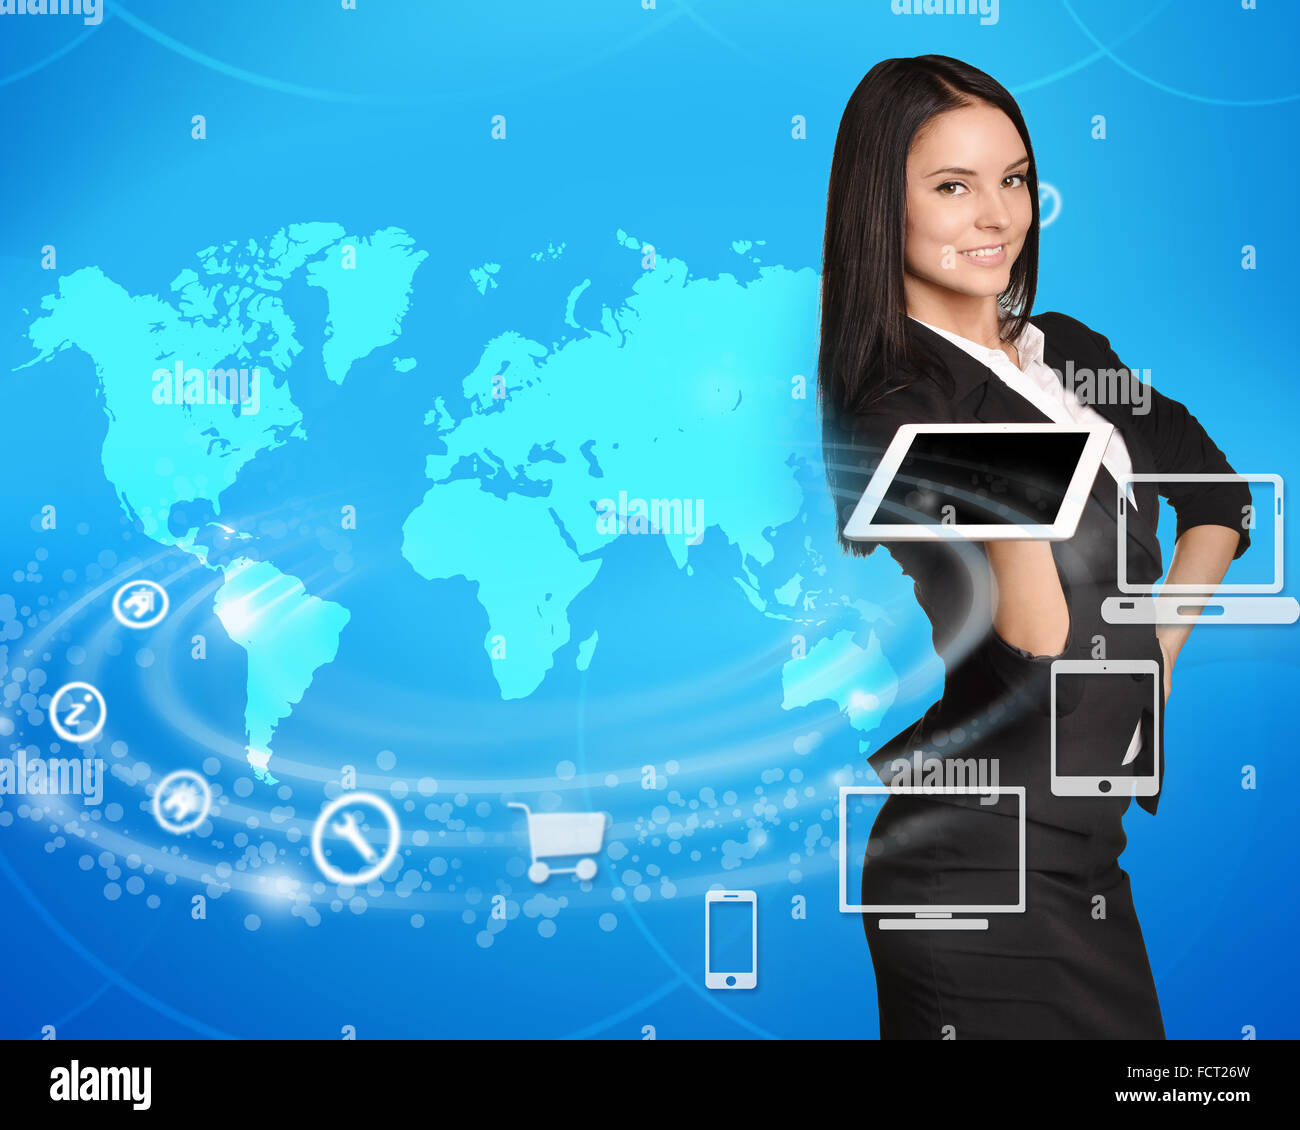 Business Woman standing avec tablette en main sur world map background Photo Stock